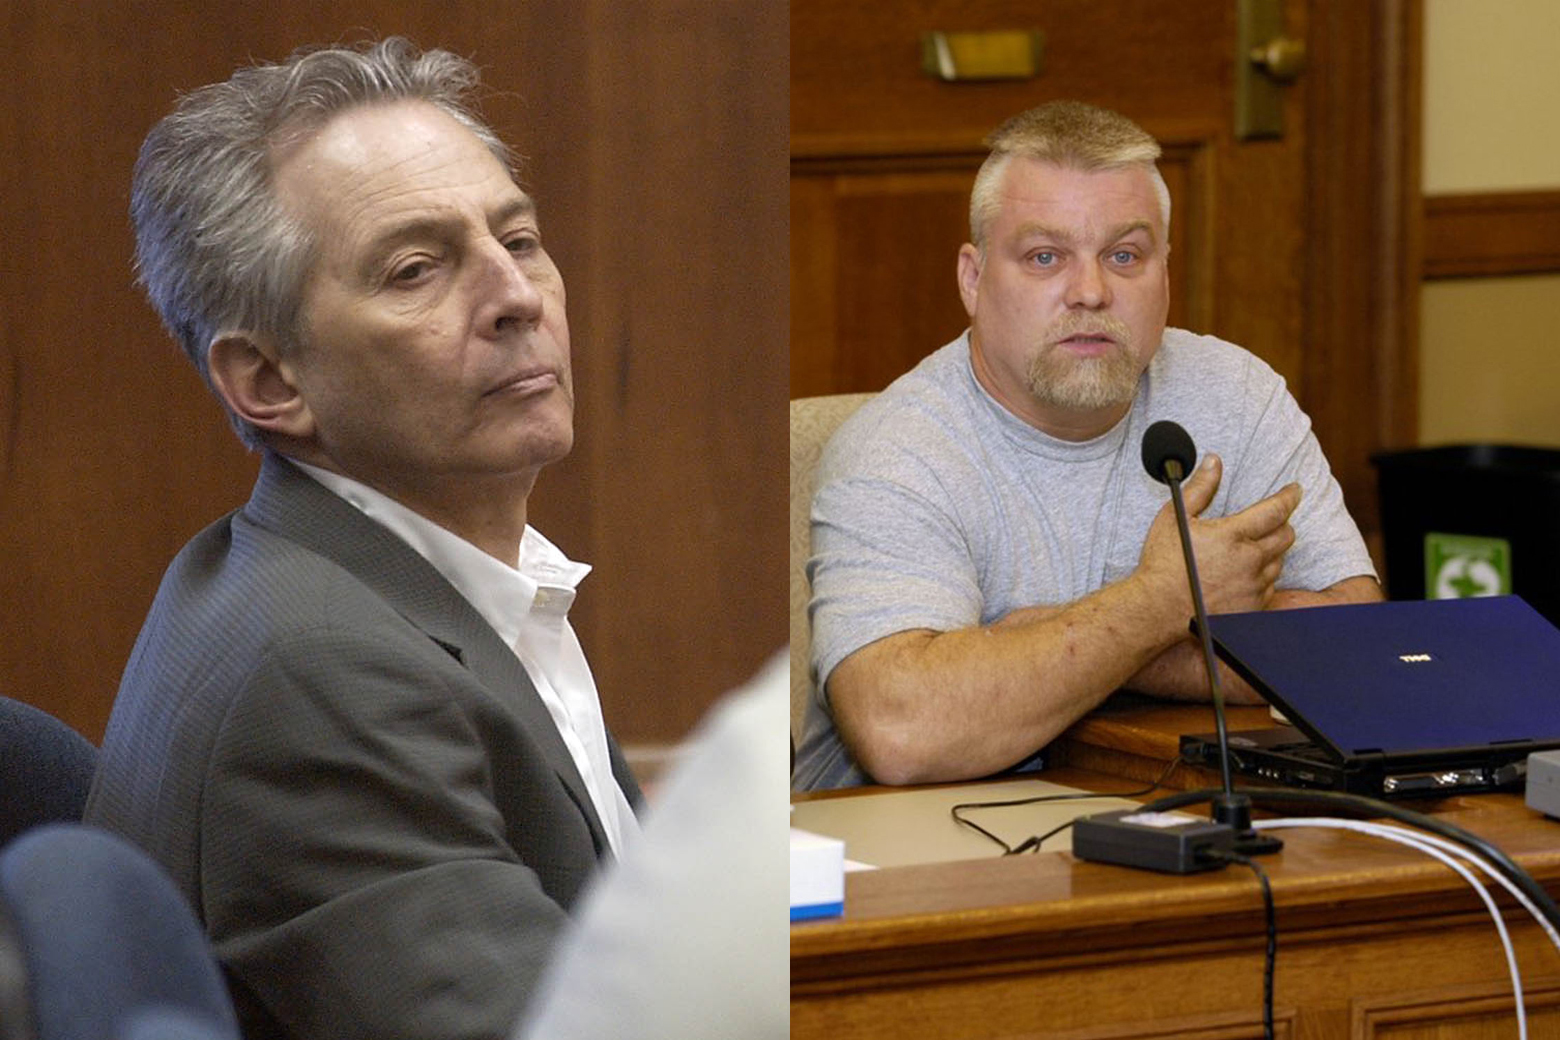 True-crime TV explodes from 'Making a Murderer' to 'The Jinx'